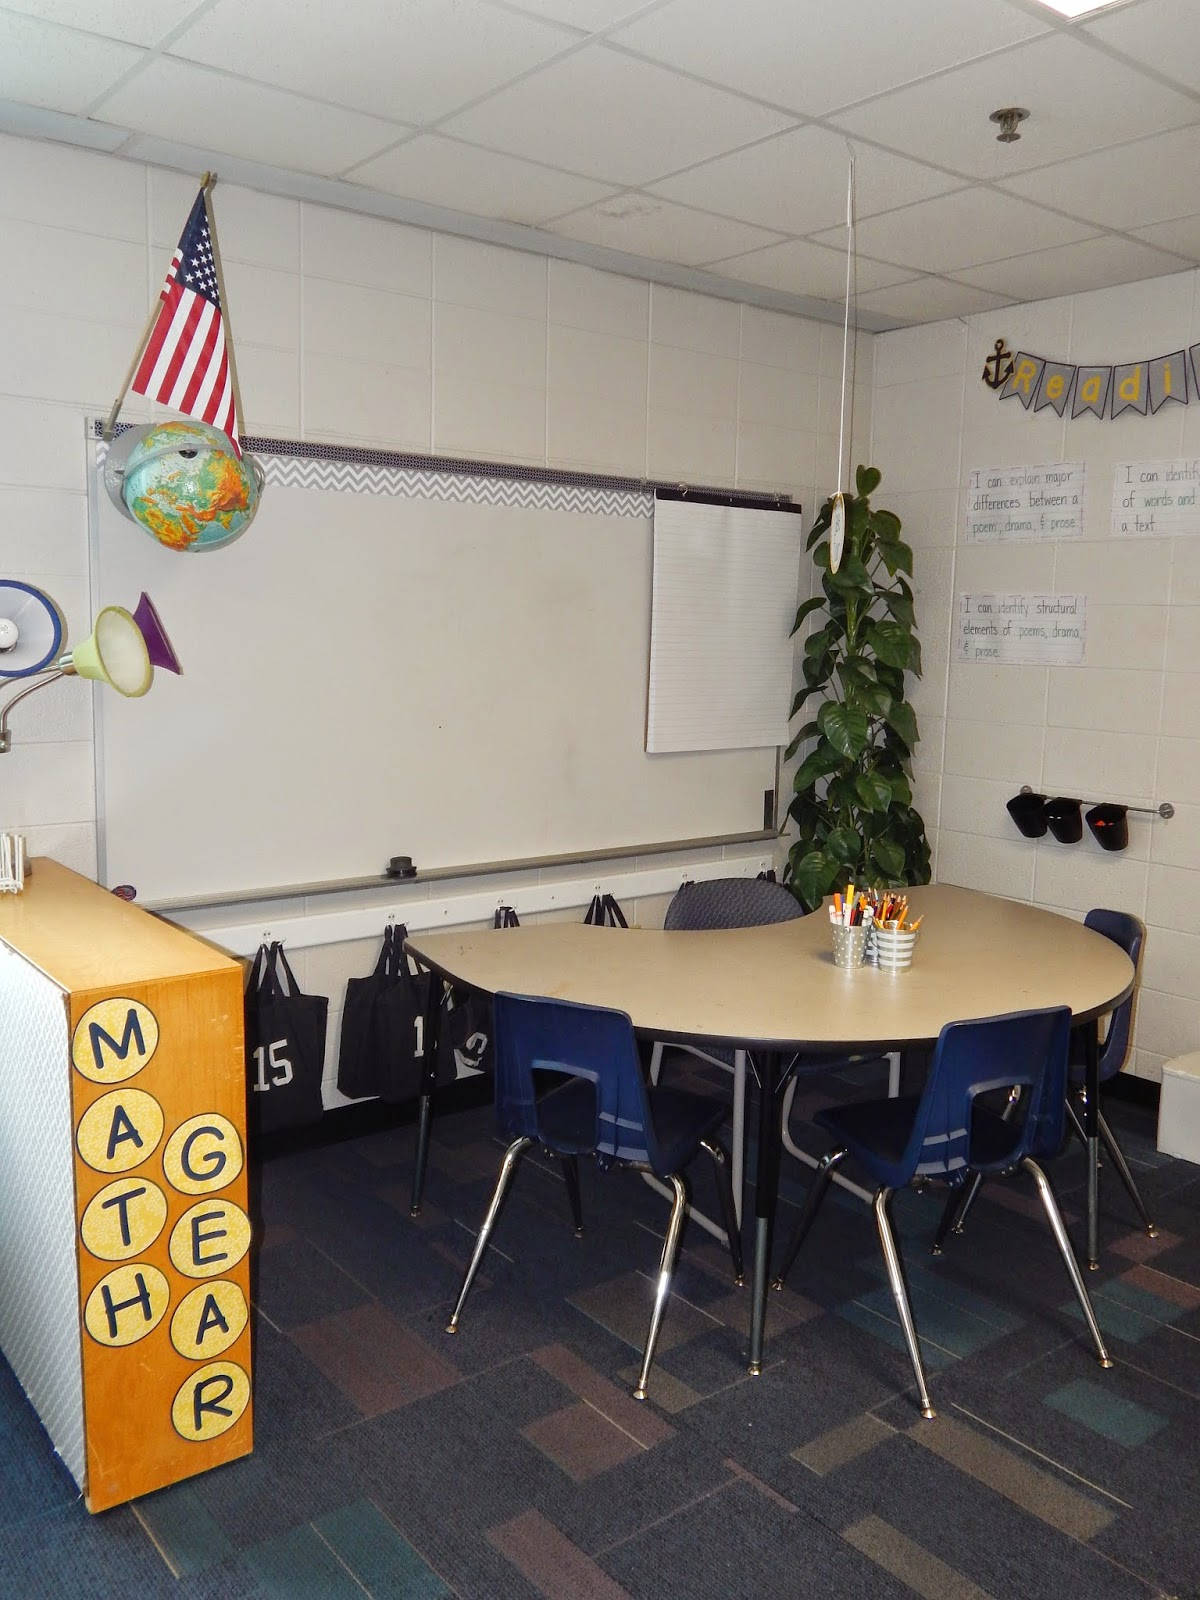 New Classroom Set Up Encouraging Self Directed Learning and